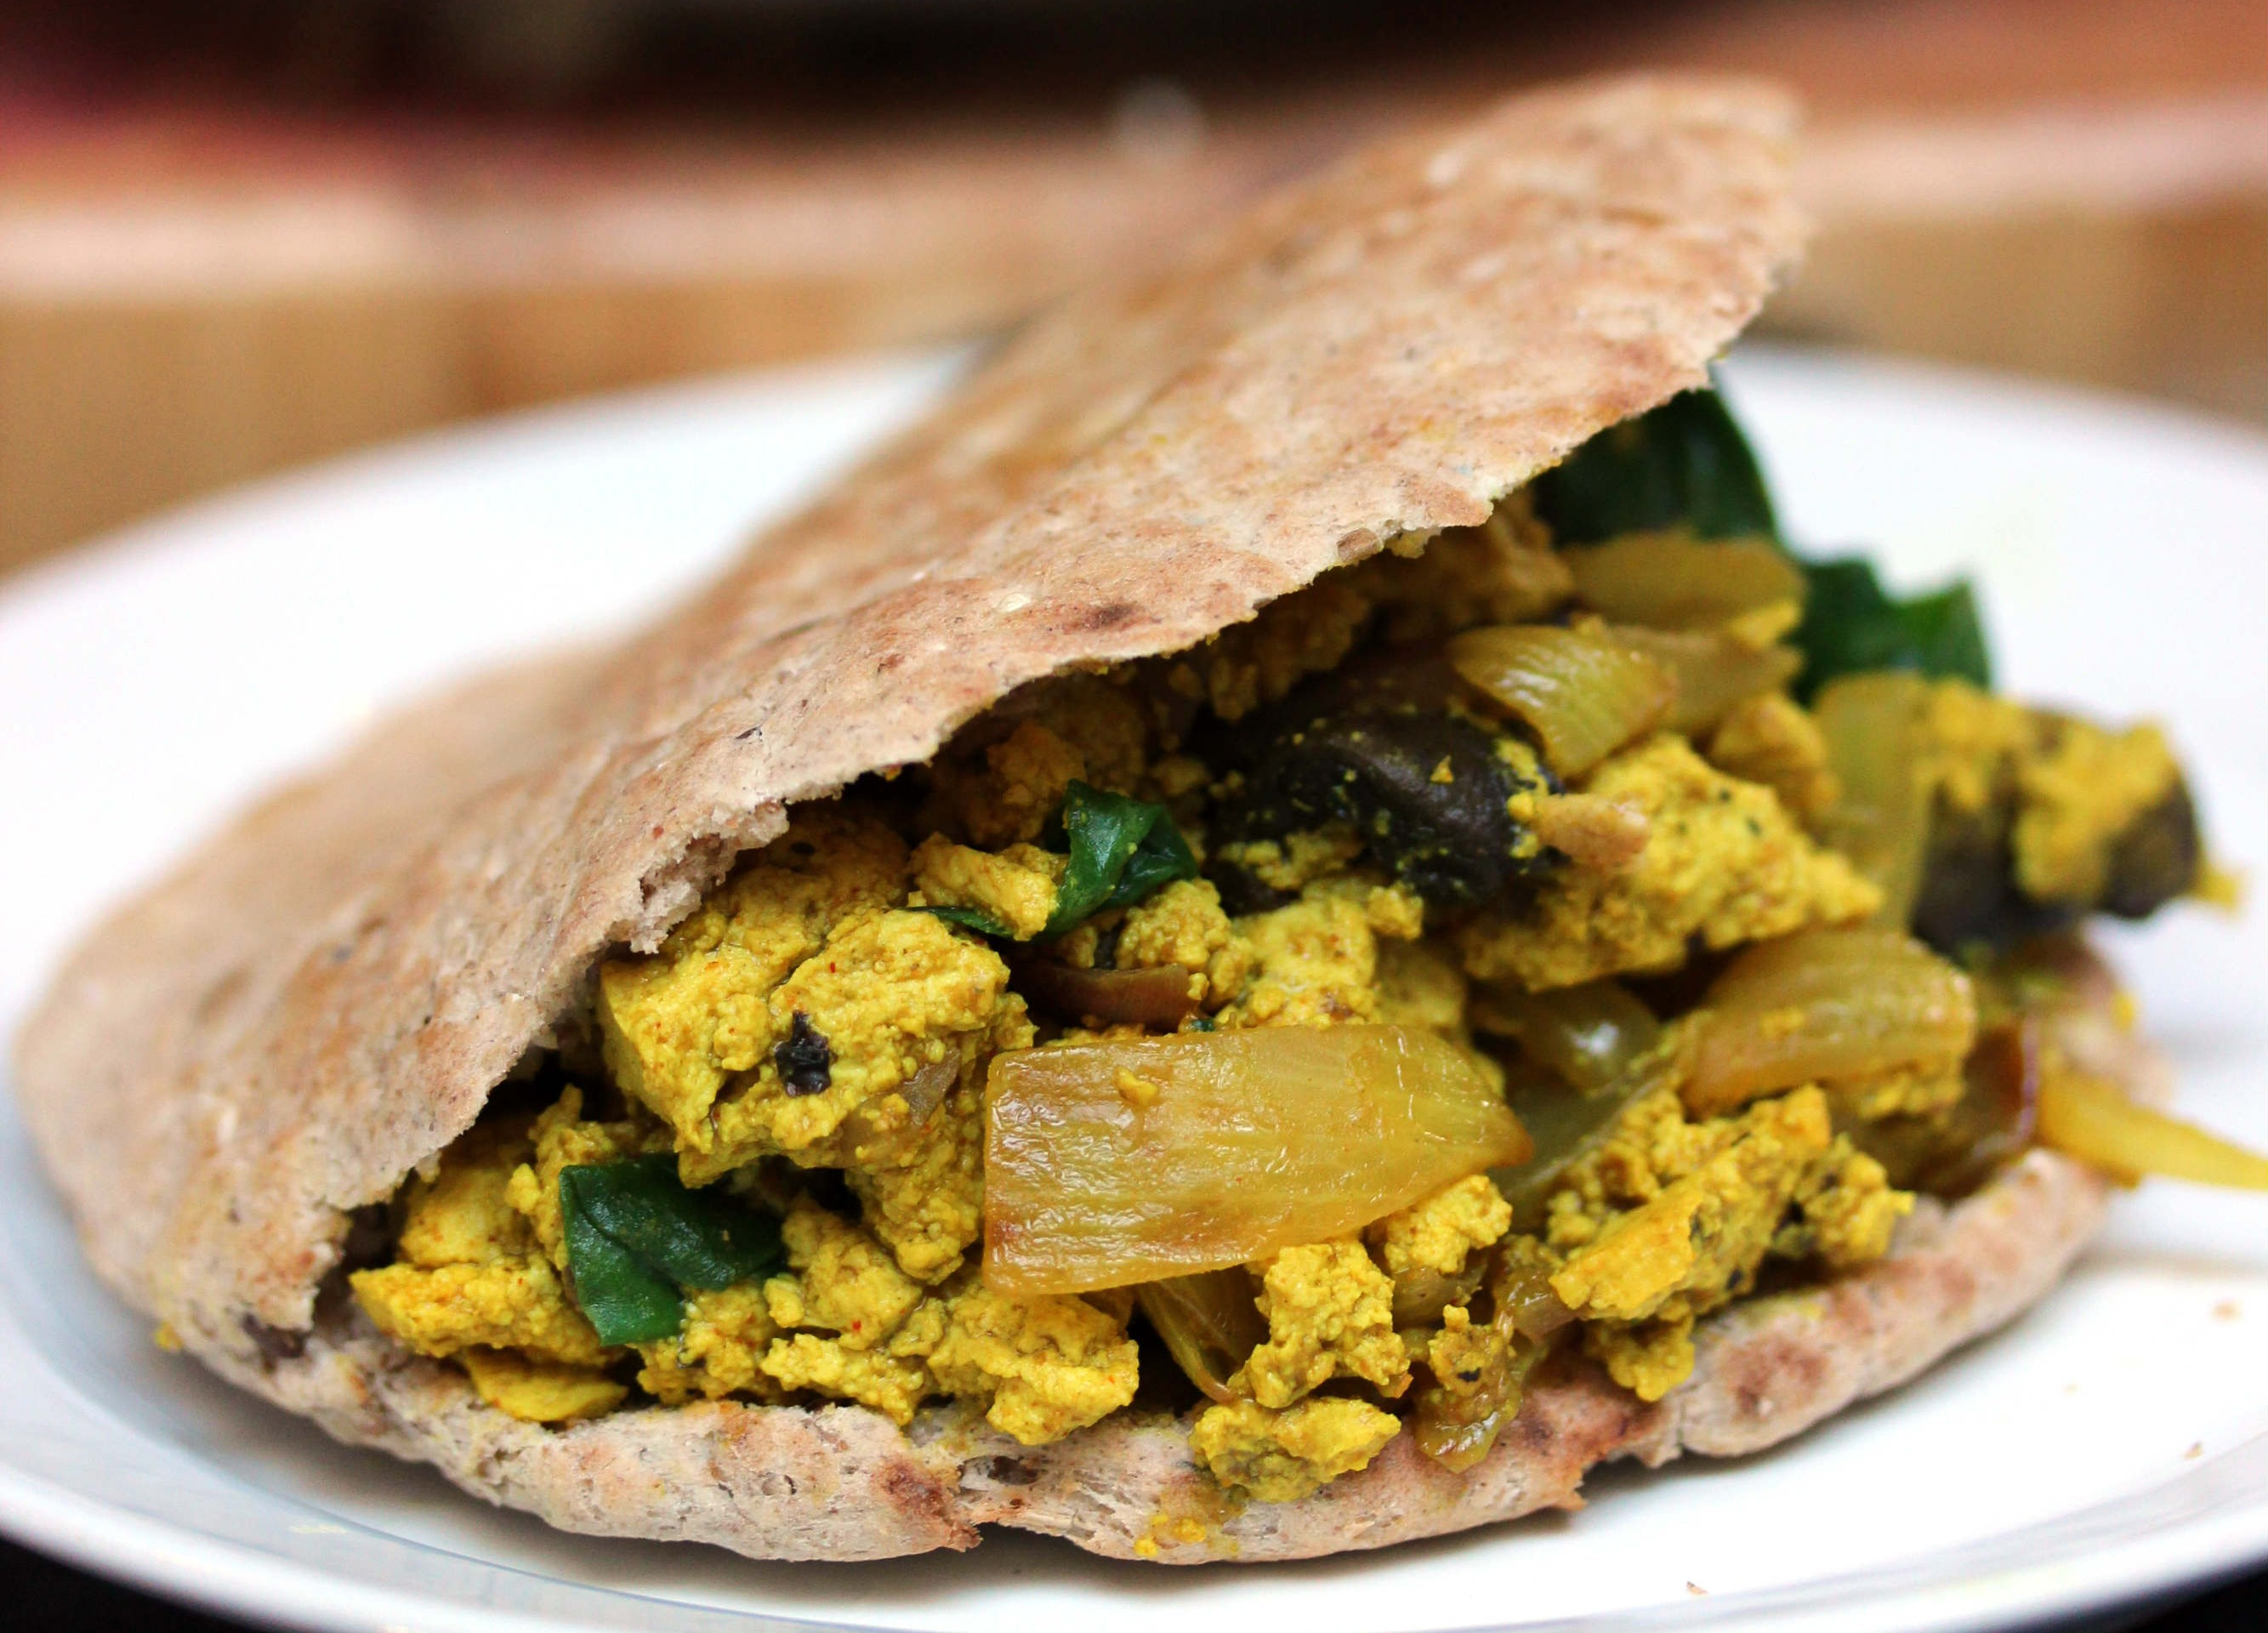 Vegan tofu scramble